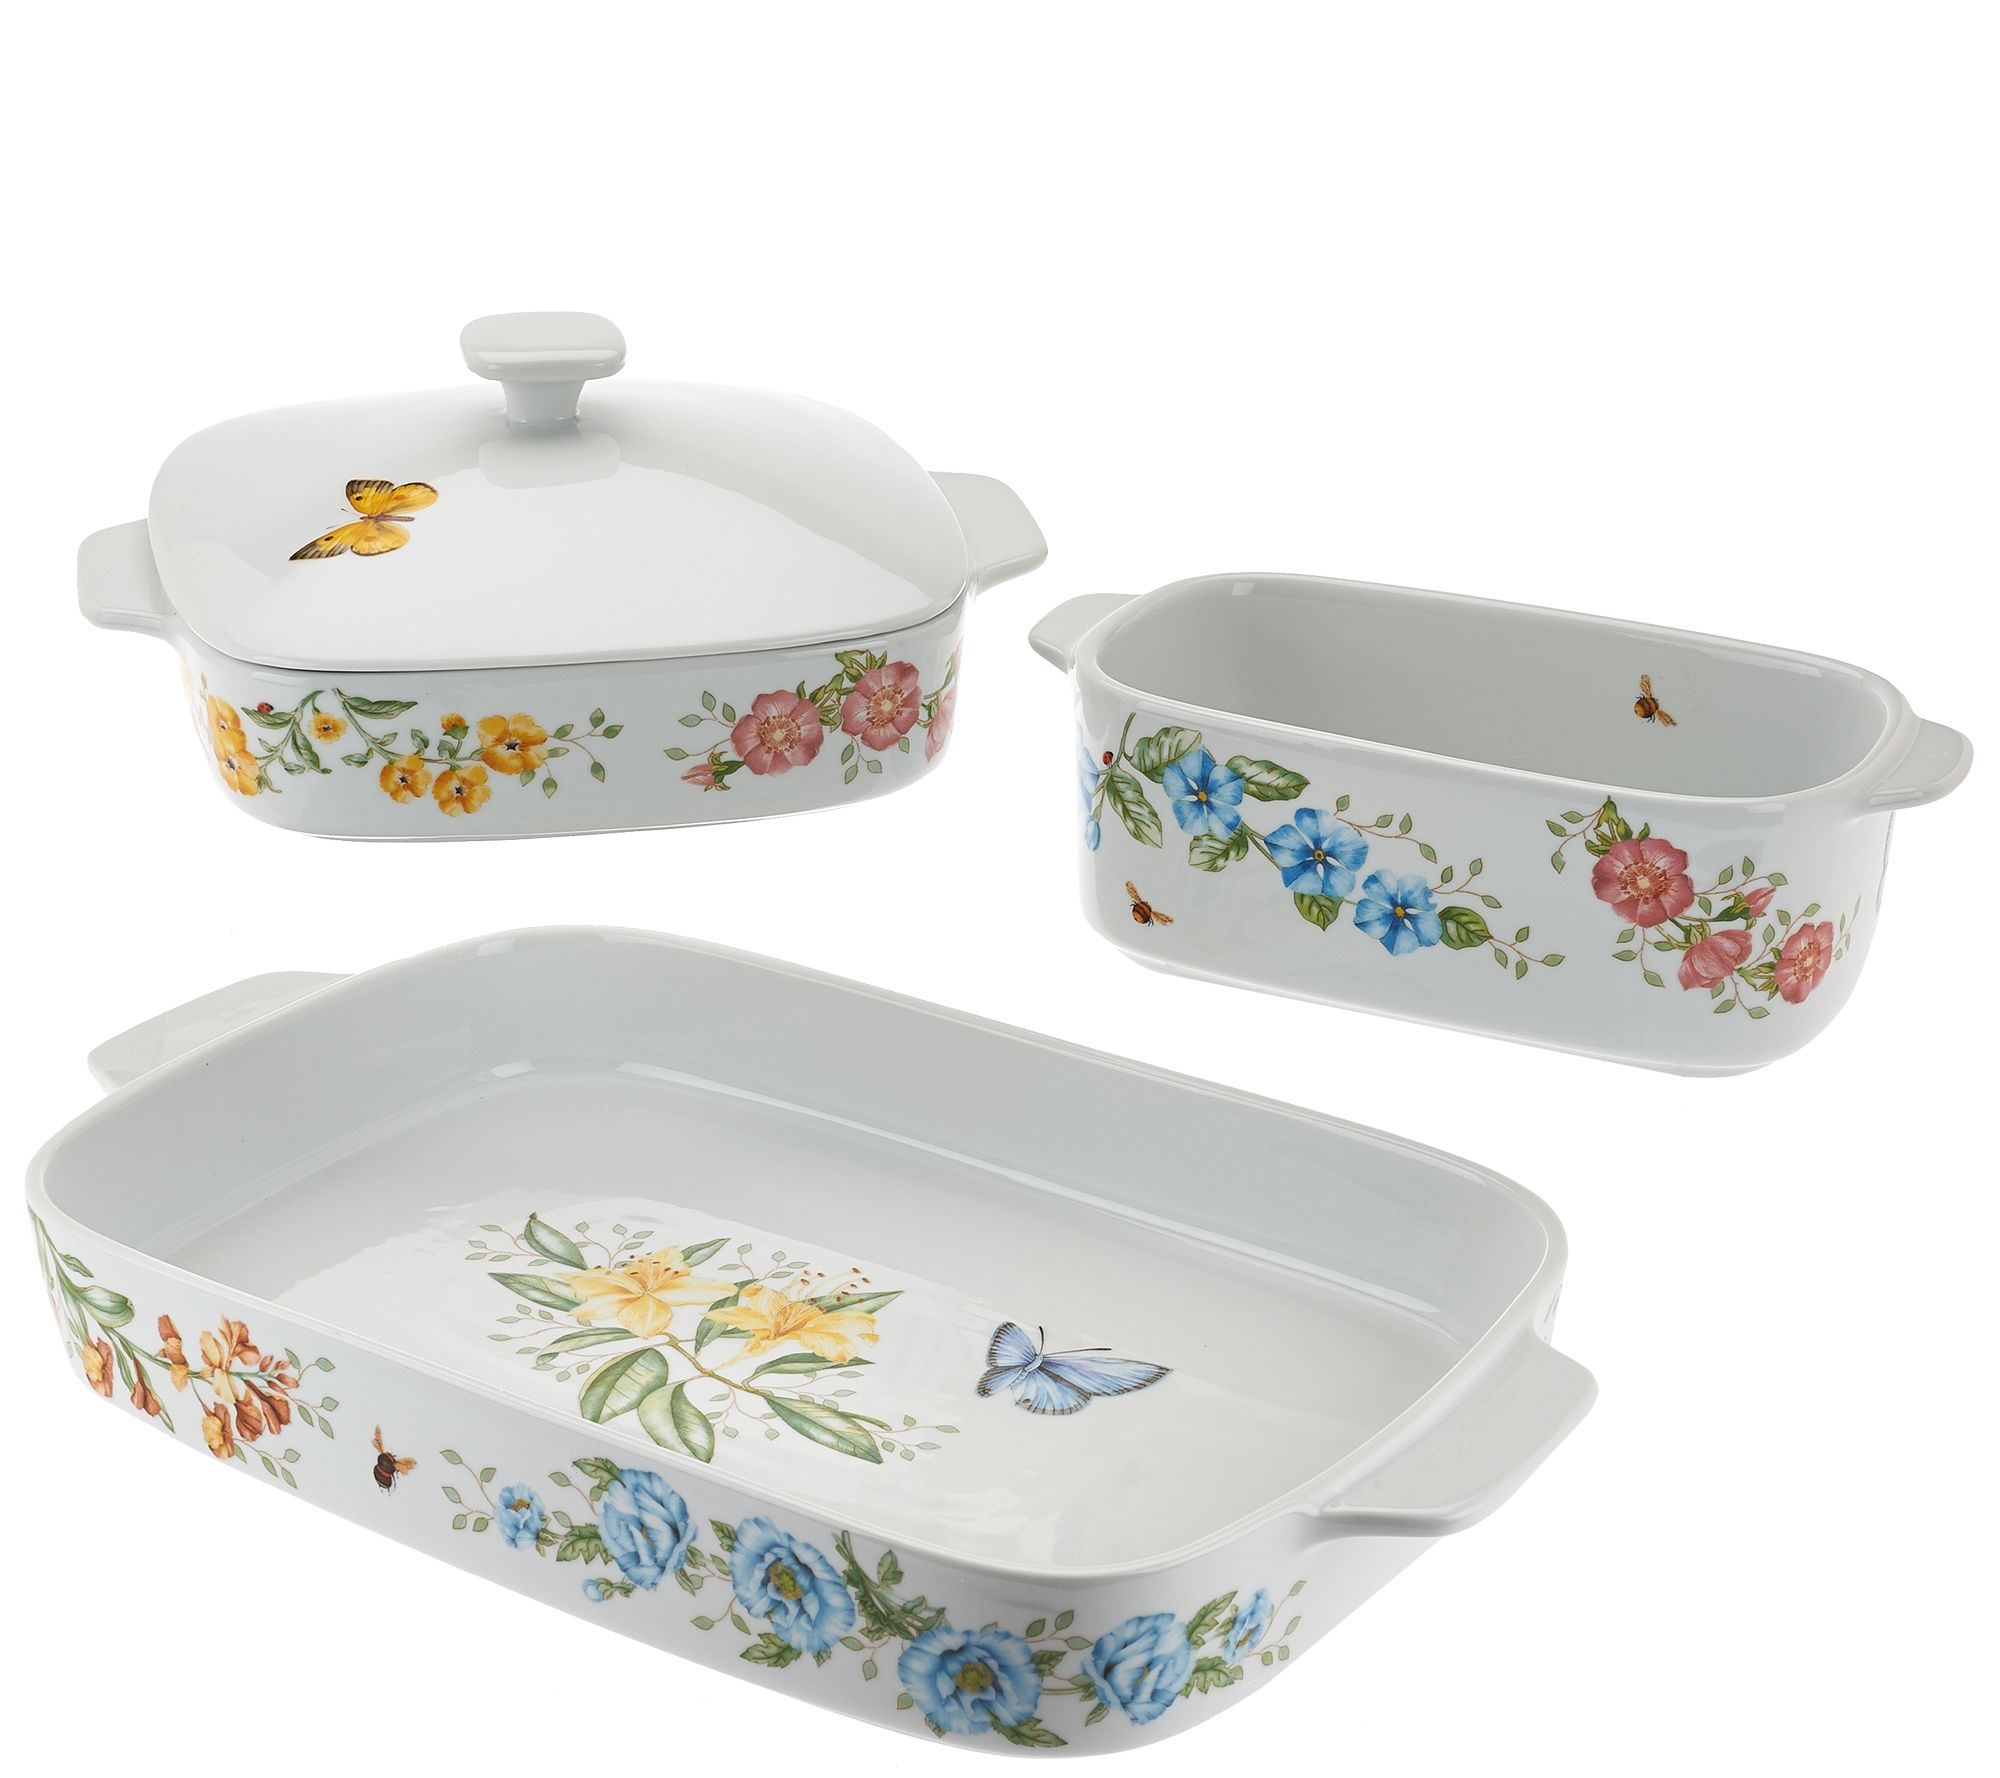 Lenox 4pc Butterfly Meadow Oven To Table Bakeware Set Qvc Com